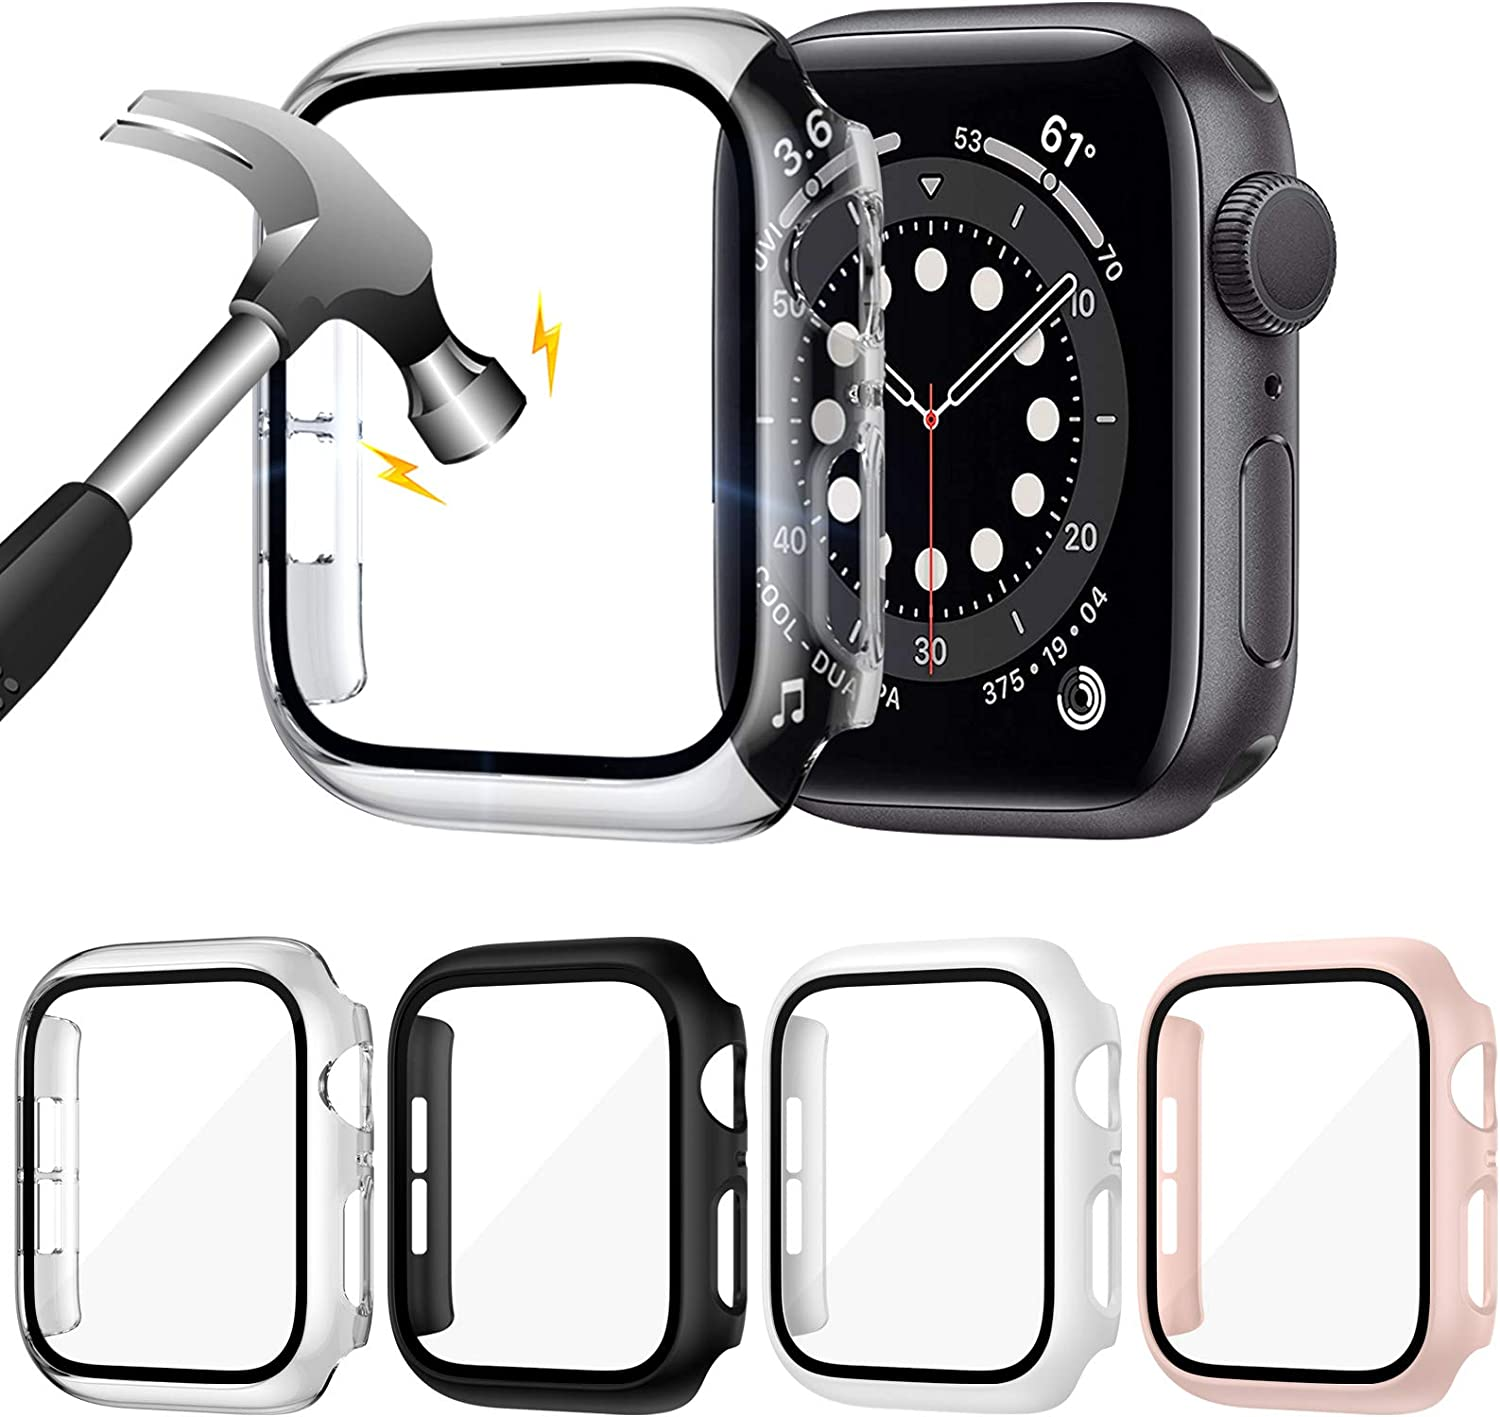 ZEBRE 4-Pack Hard PC Case with Tempered Glass Screen Protector Compatible with Apple Watch Series 6 SE Series 5 Series 4 40mm